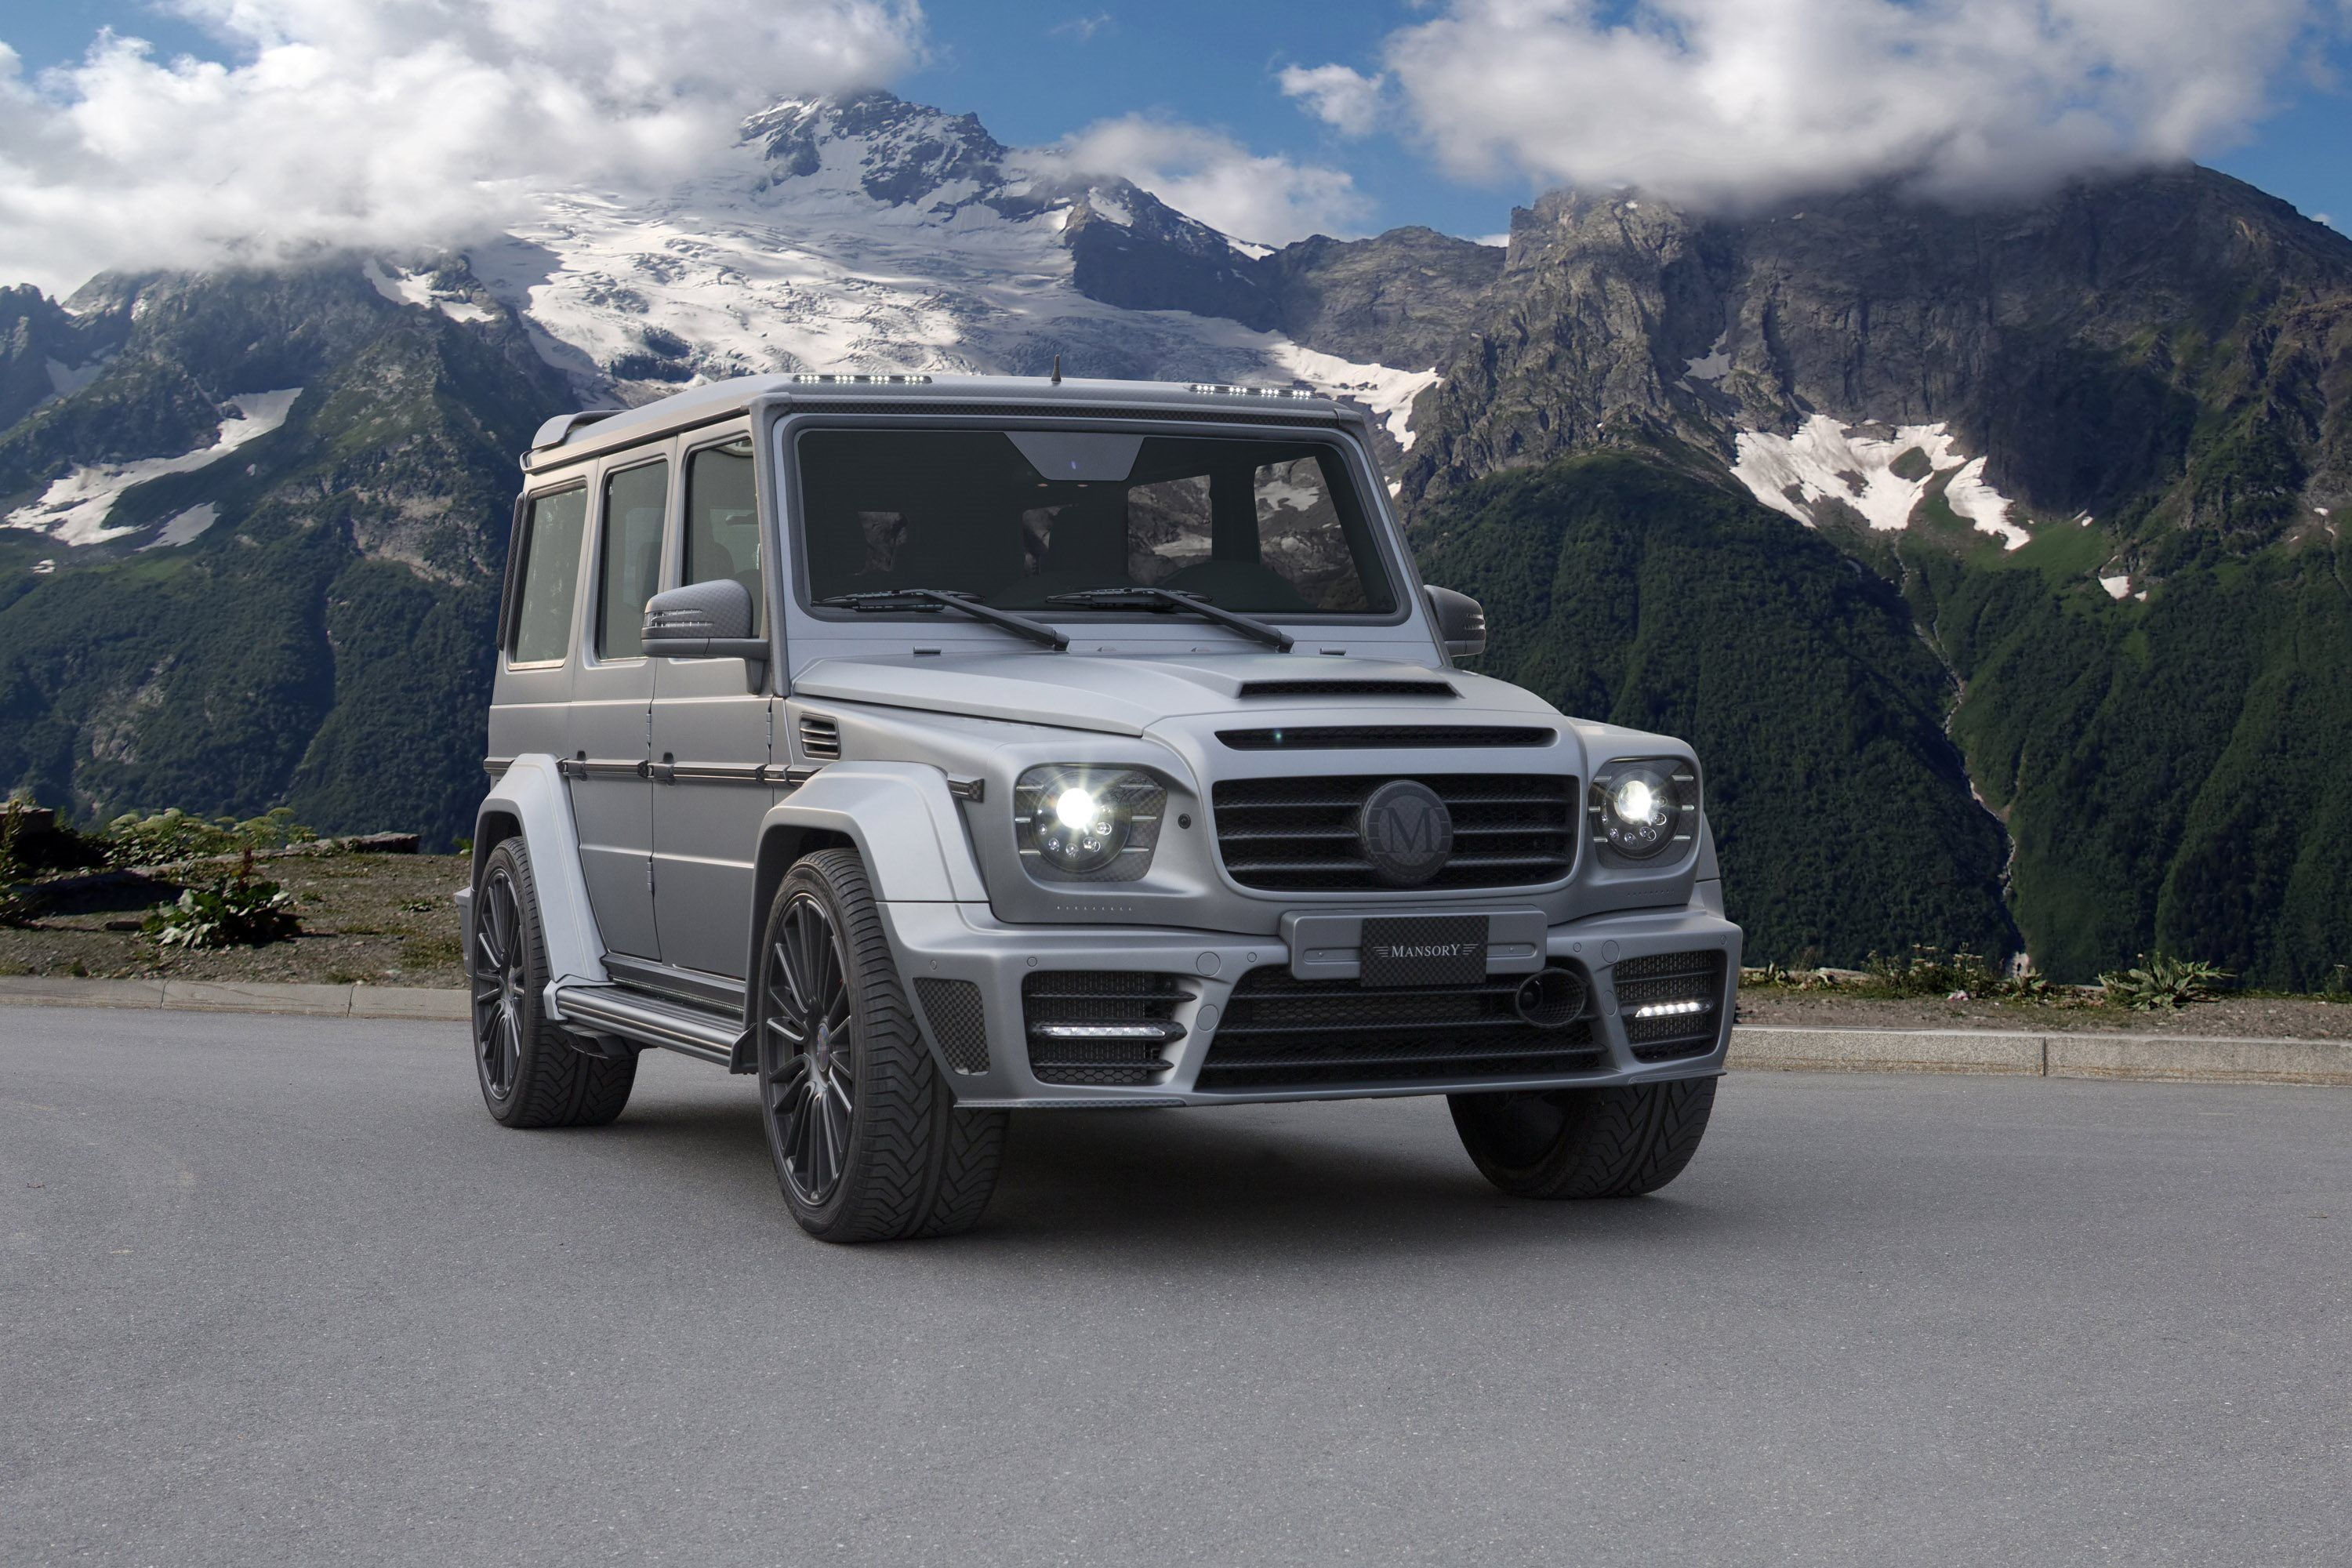 Mansory Mercedes Benz G Class Amg Gronos The Good Life